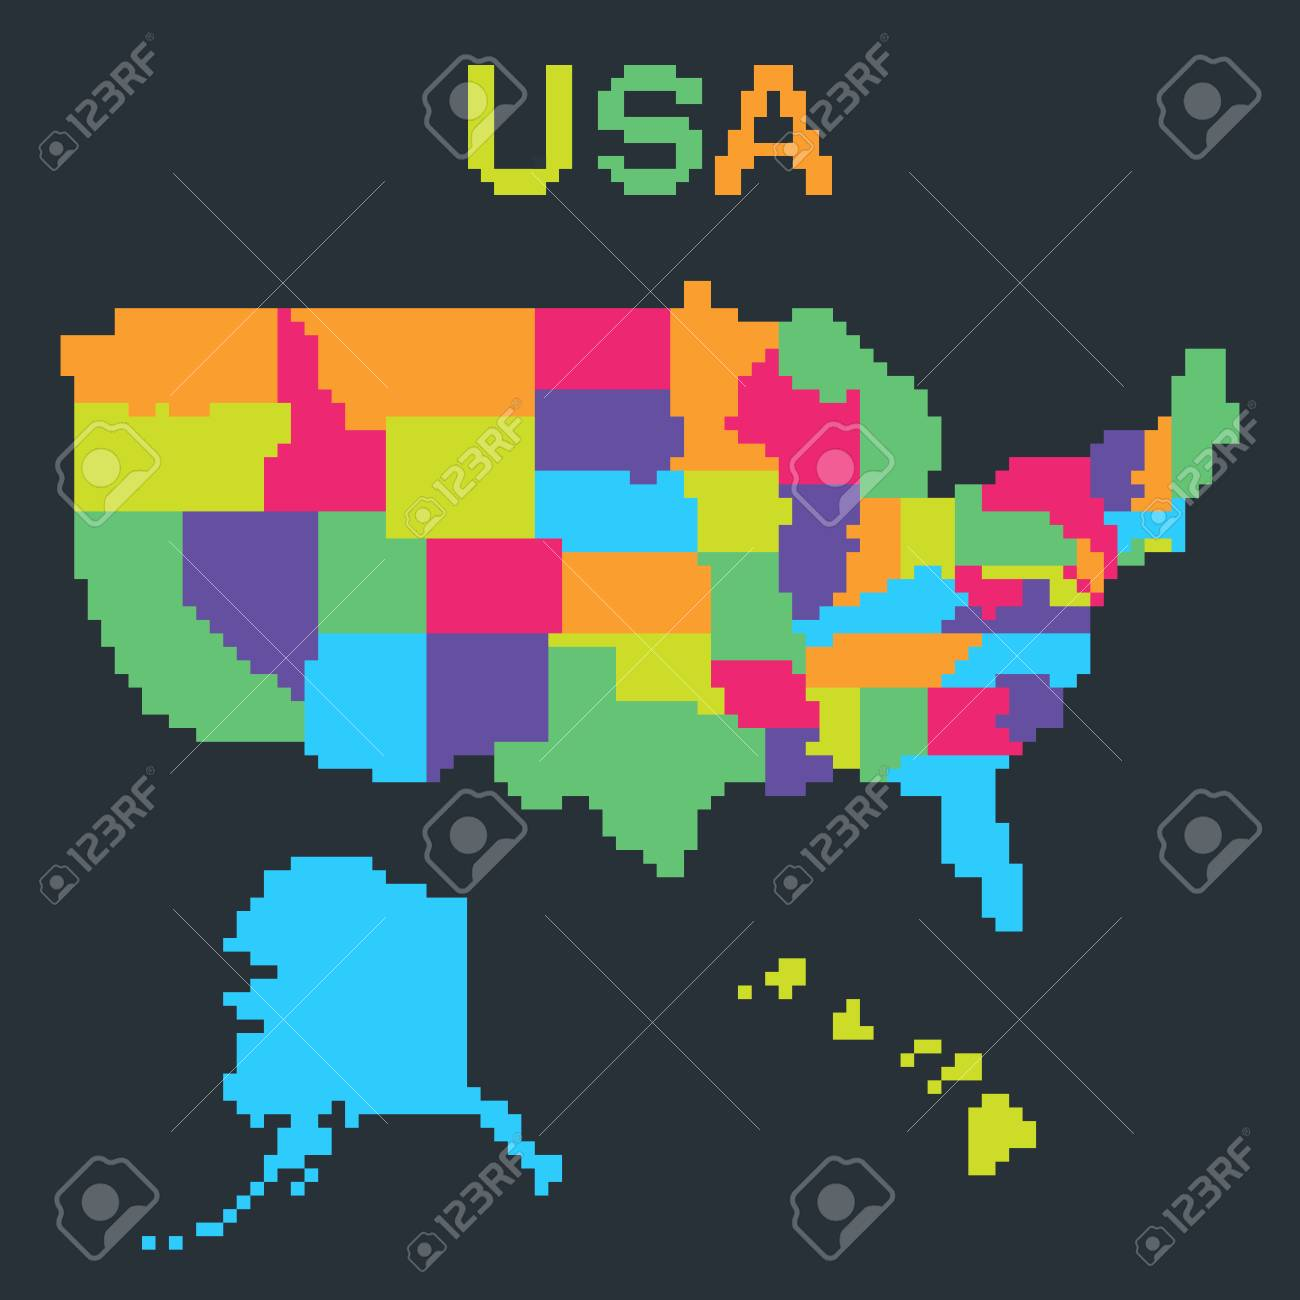 Map Of United States Of America In 8 Bit Pixel Art Style With